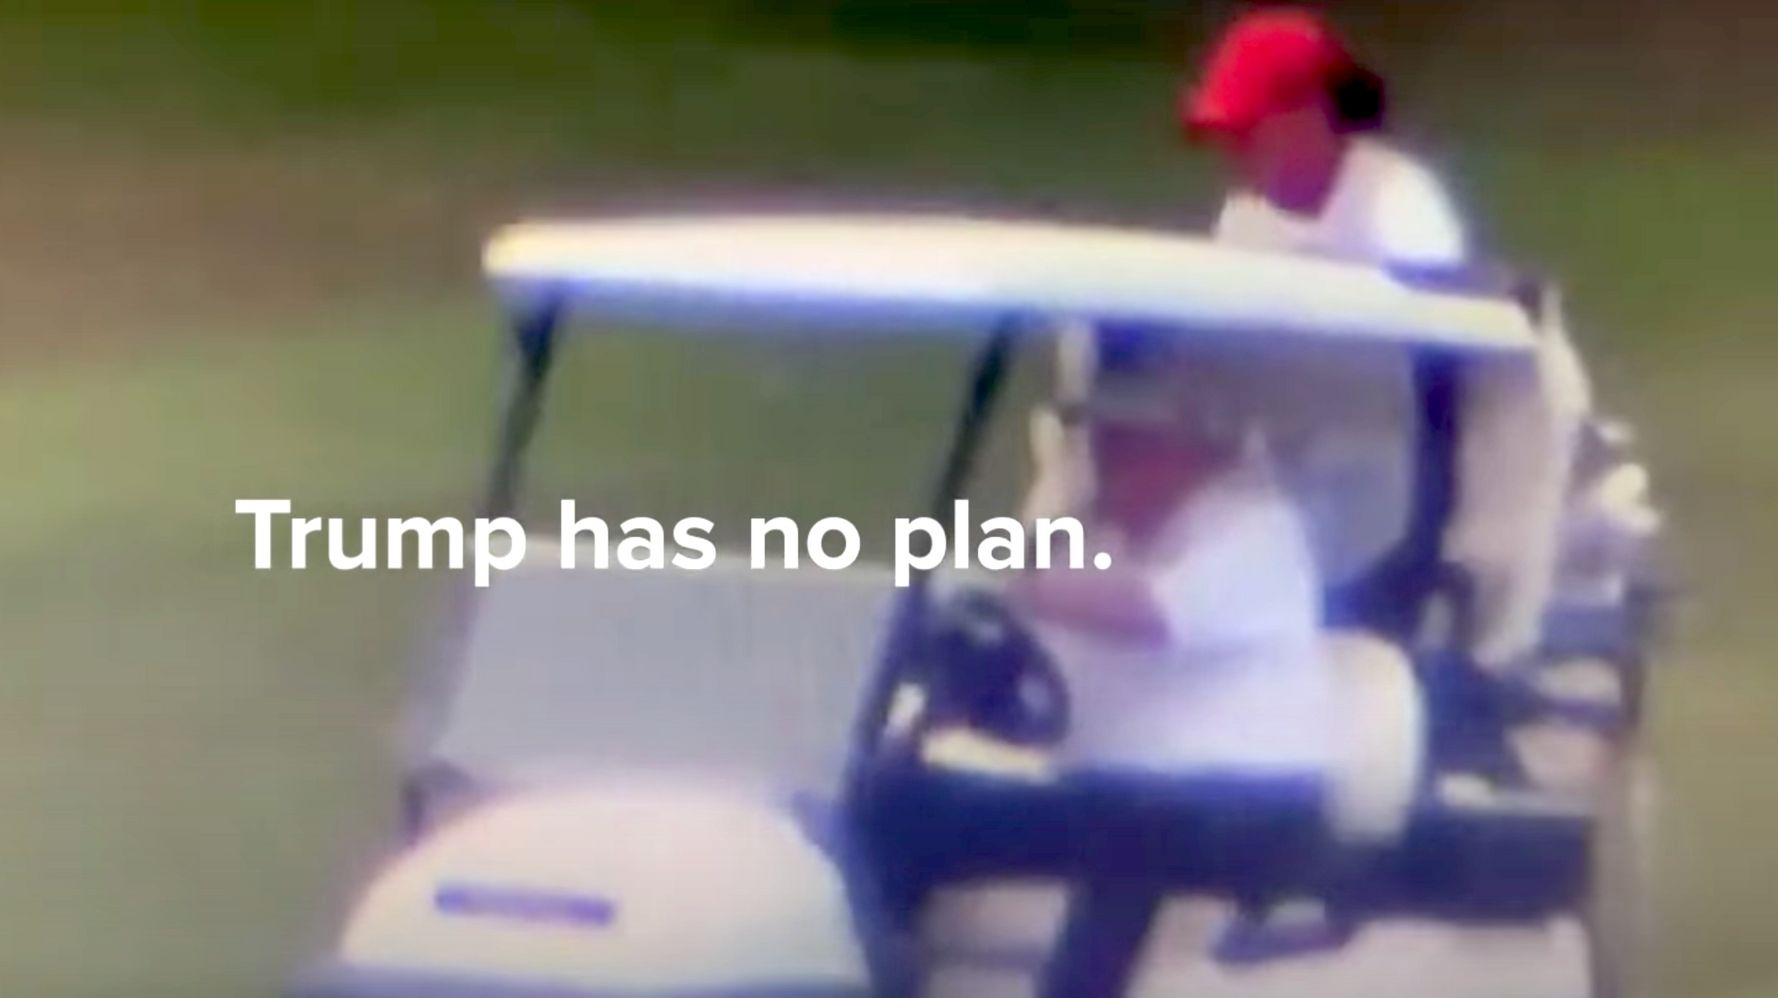 Trump's Broken Promises On Healthcare Called Out In Stinging New Ad